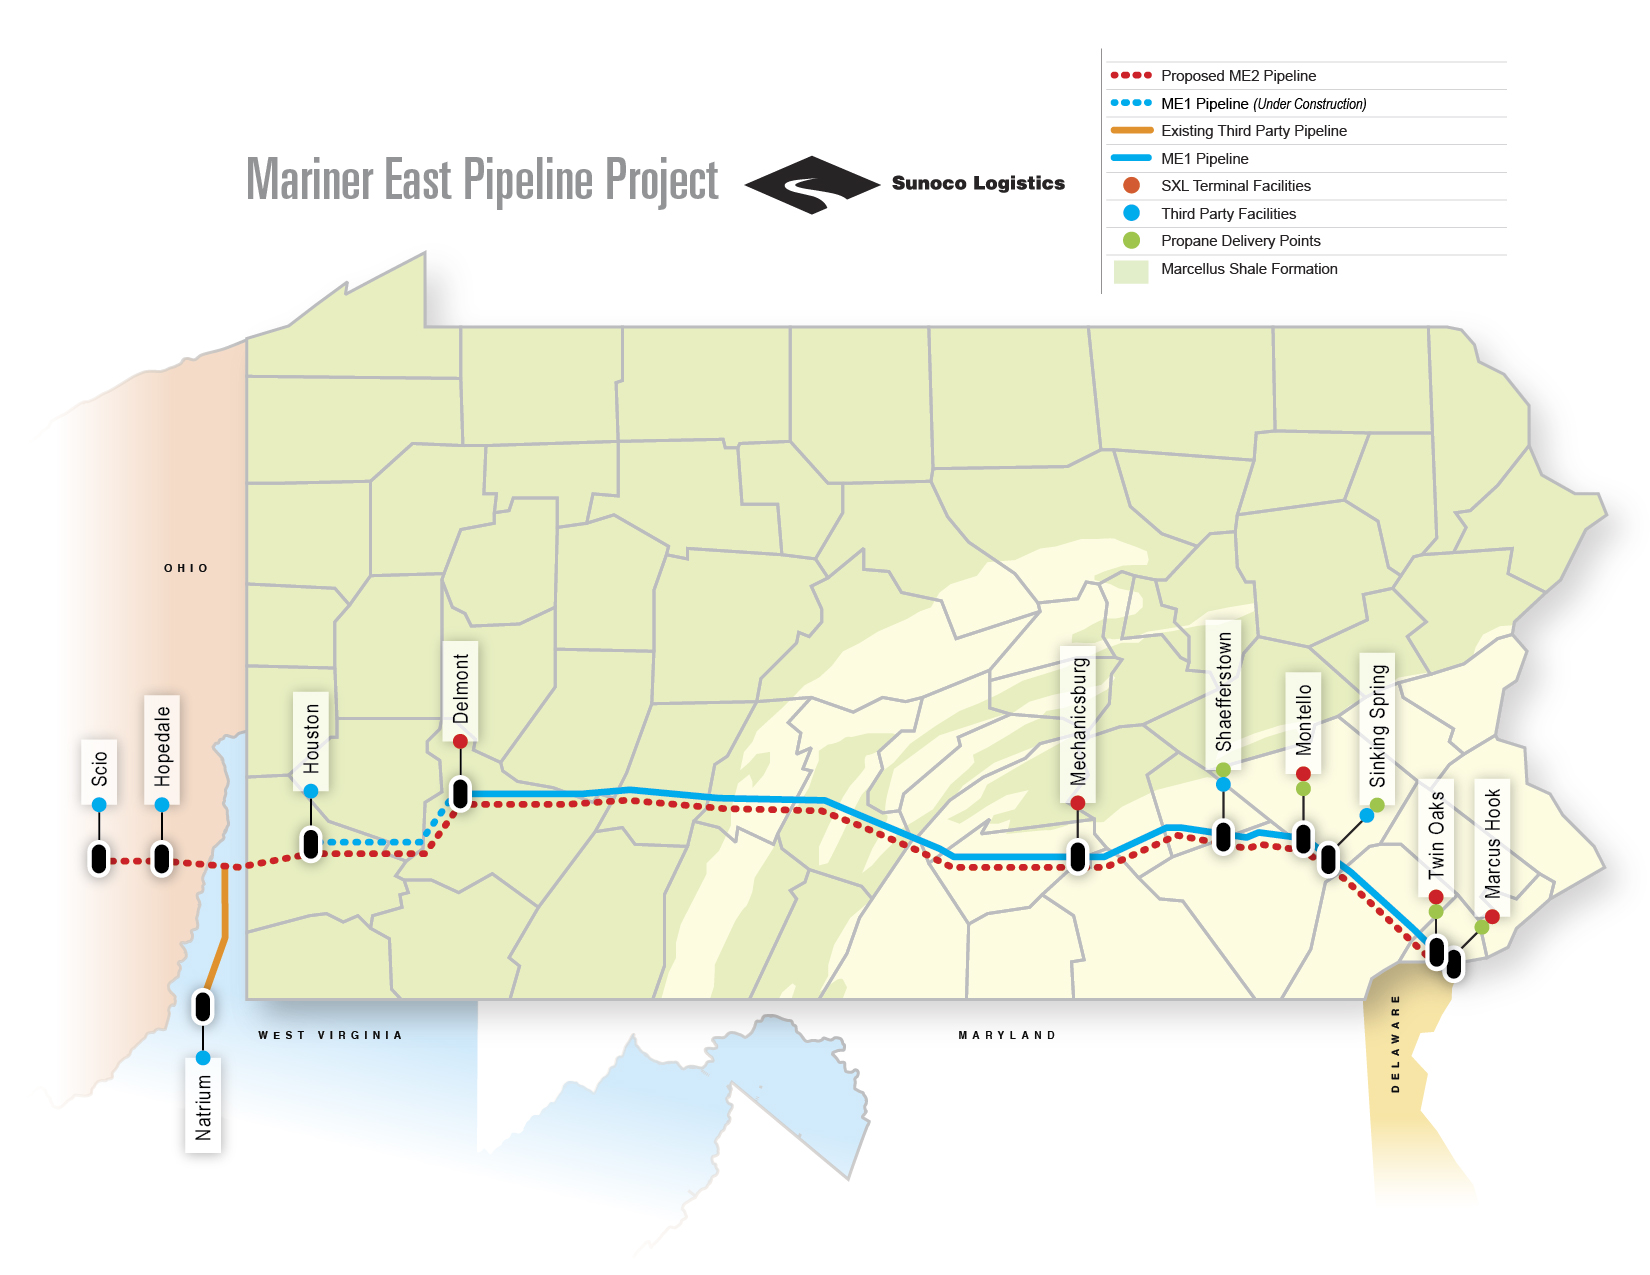 the mariner east 2 pipeline will run parallel to its predecessor the mariner east 1